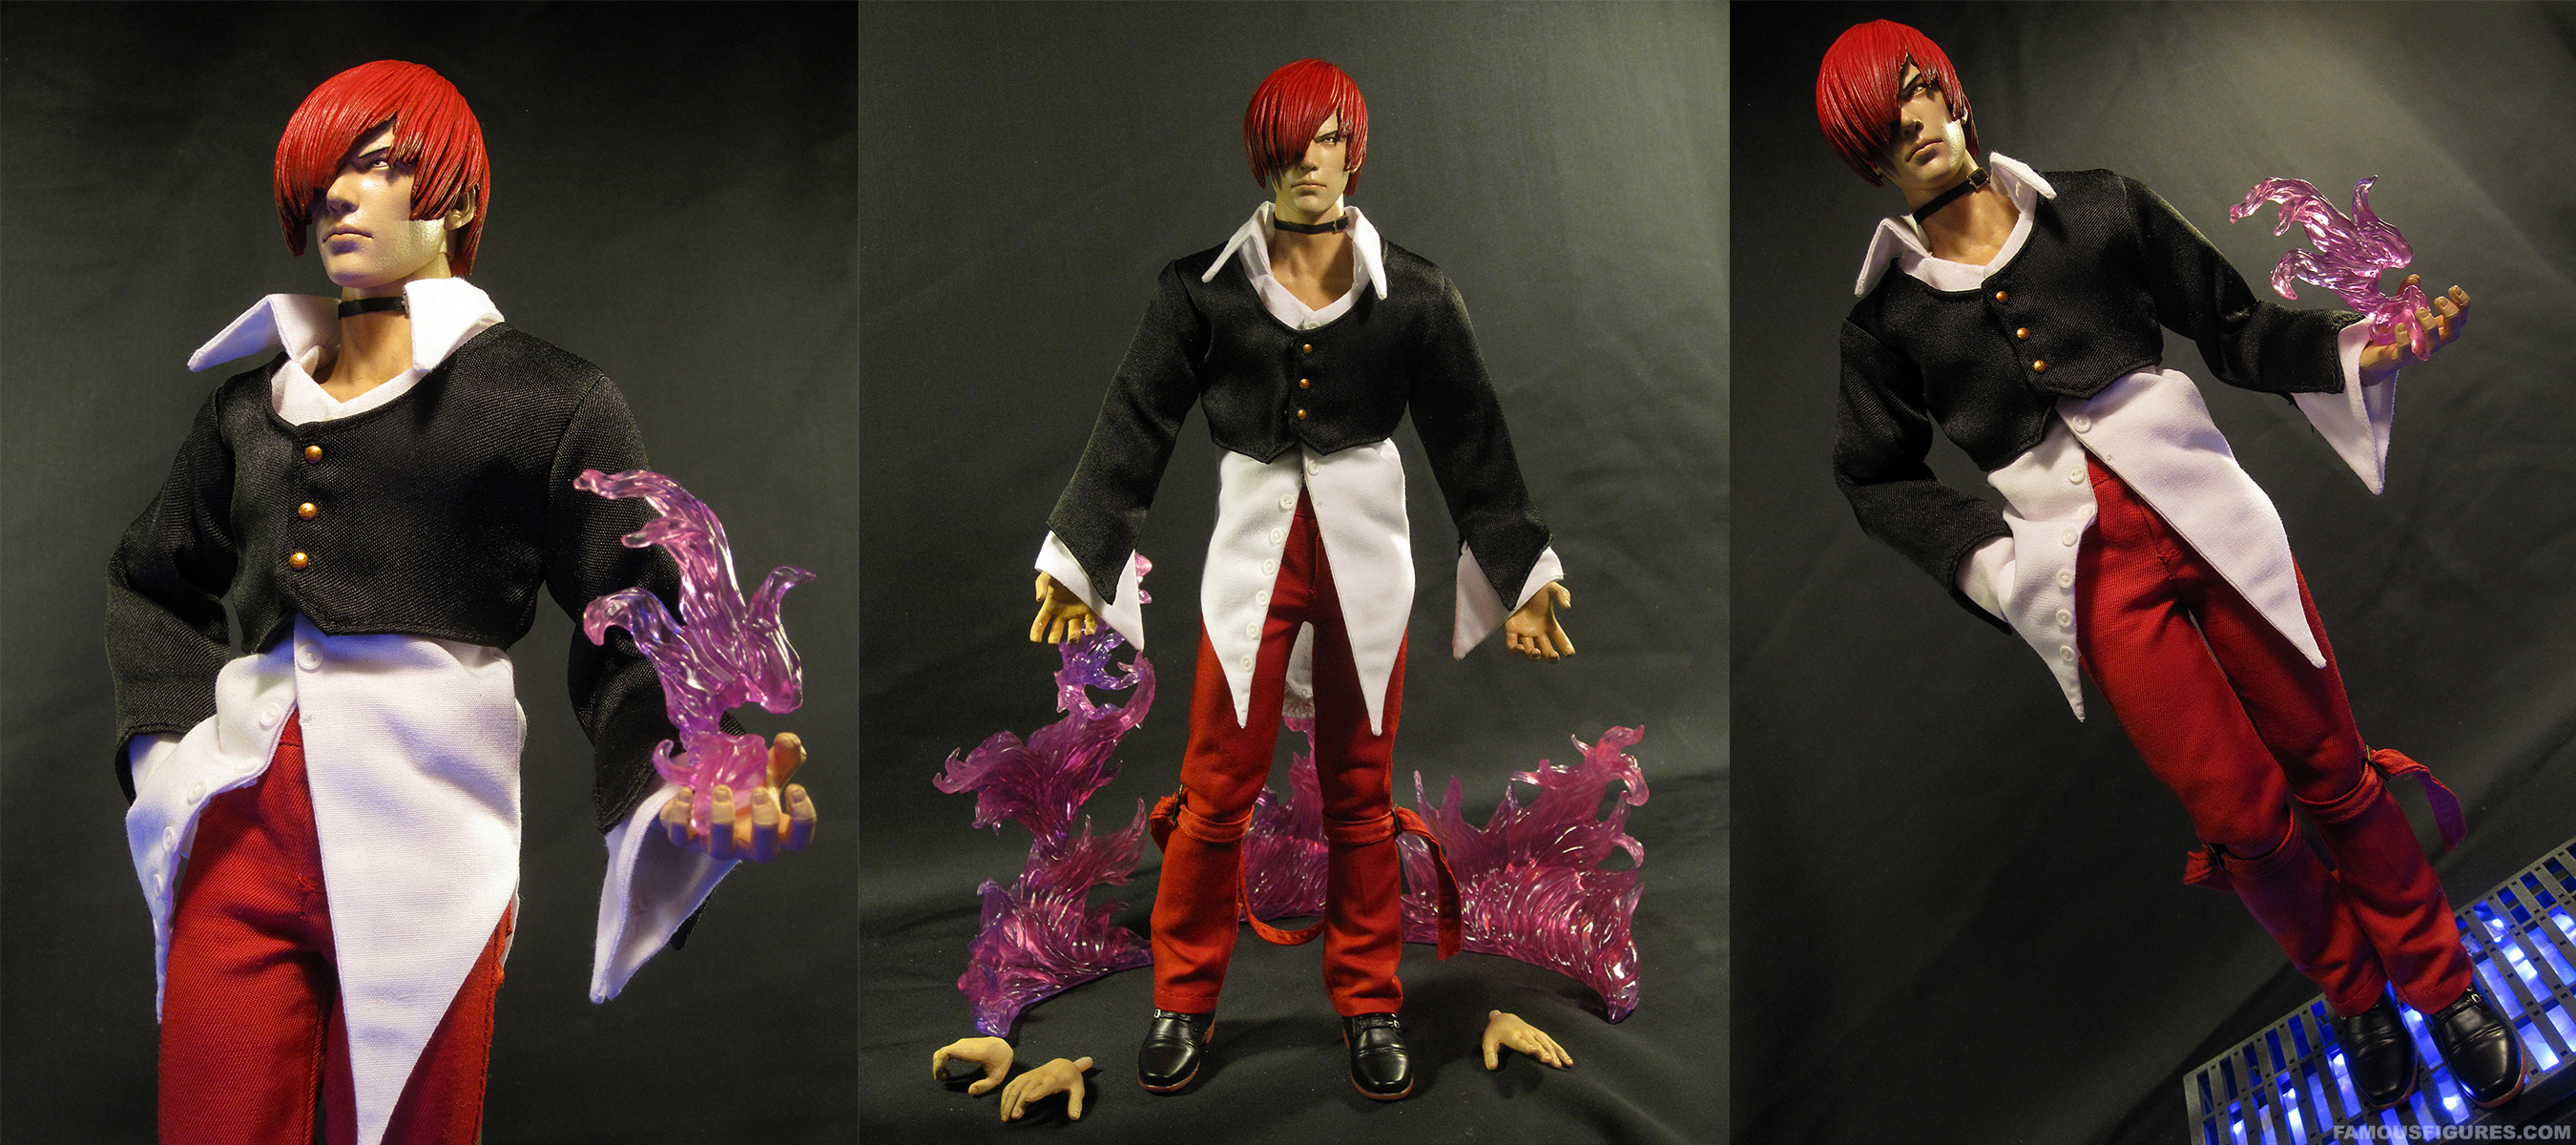 iori_kof_figure_japan_3views